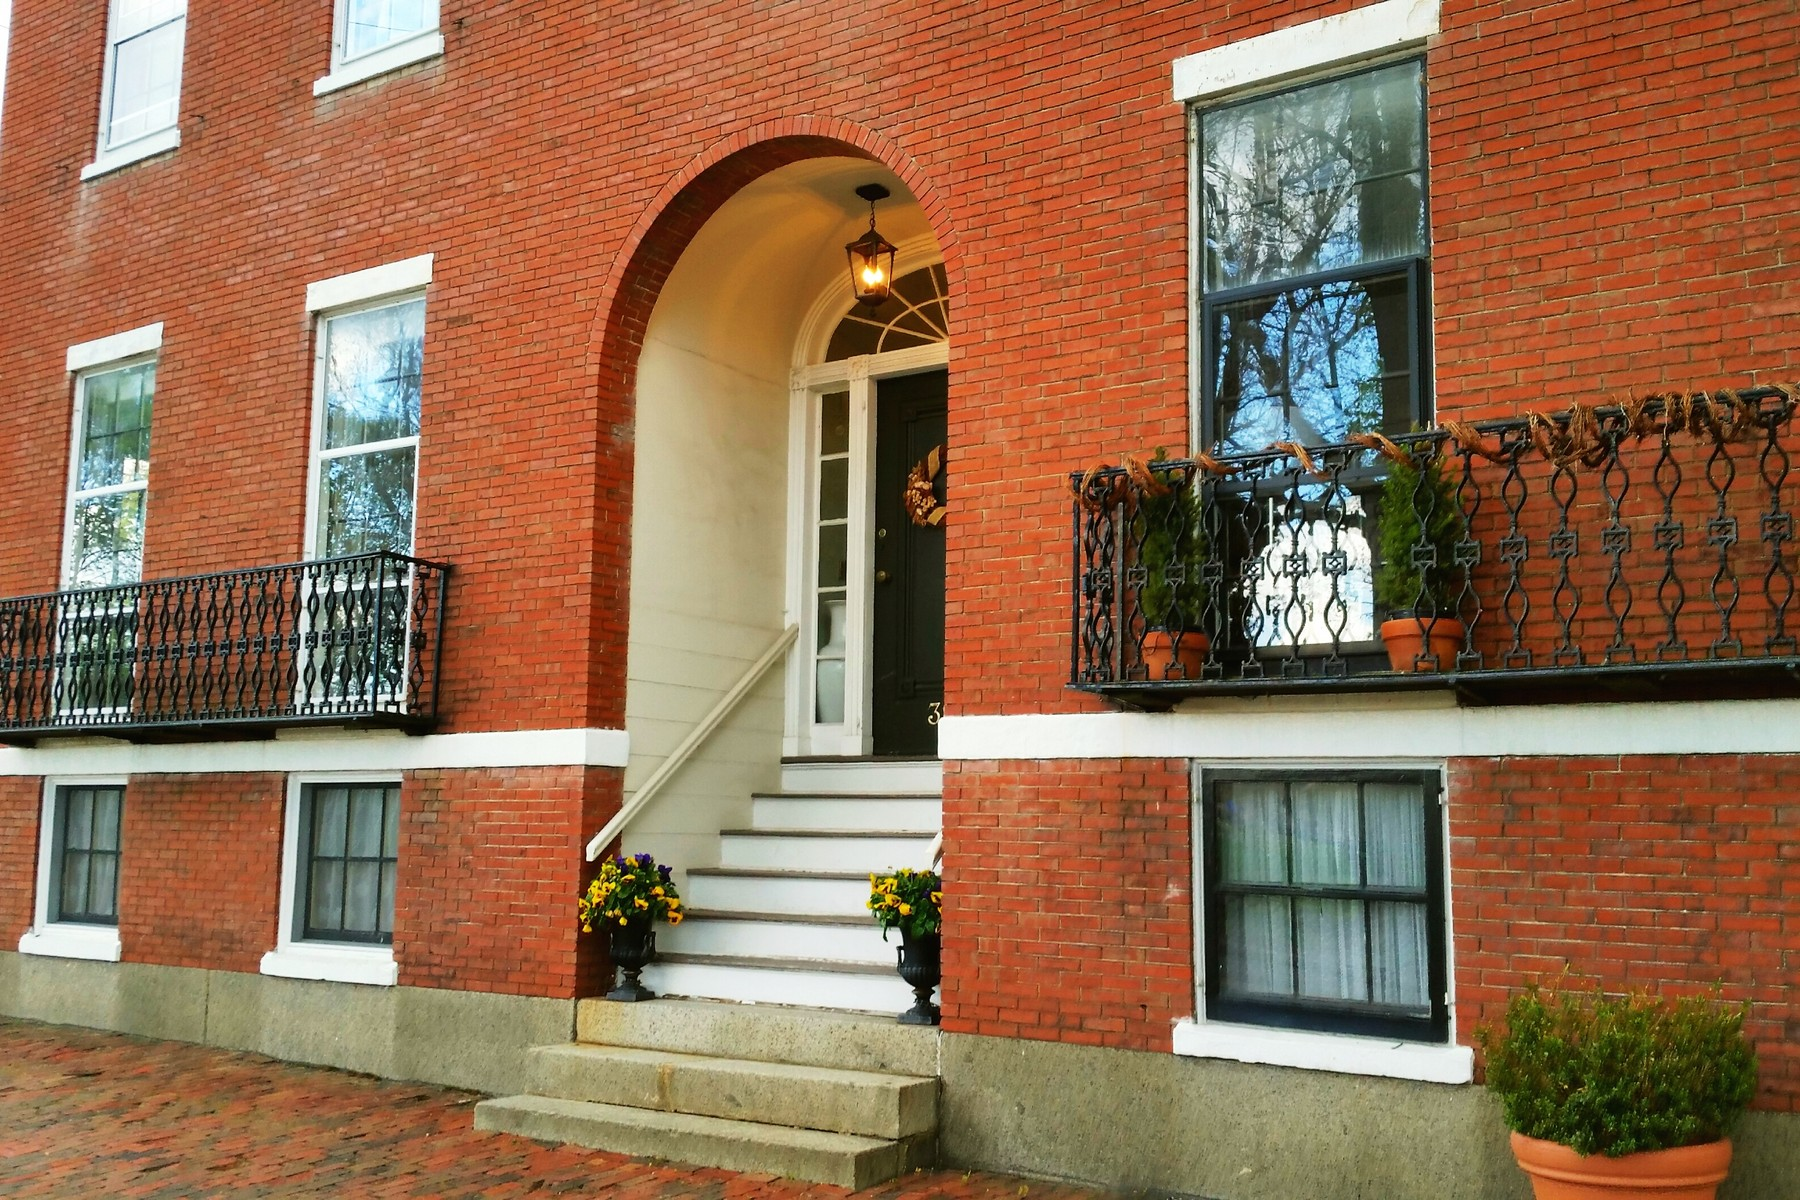 타운하우스 용 매매 에 Historic Federal Townhouse on The Common 39 Washington Square Unit 1 Salem, 매사추세츠, 01970 미국